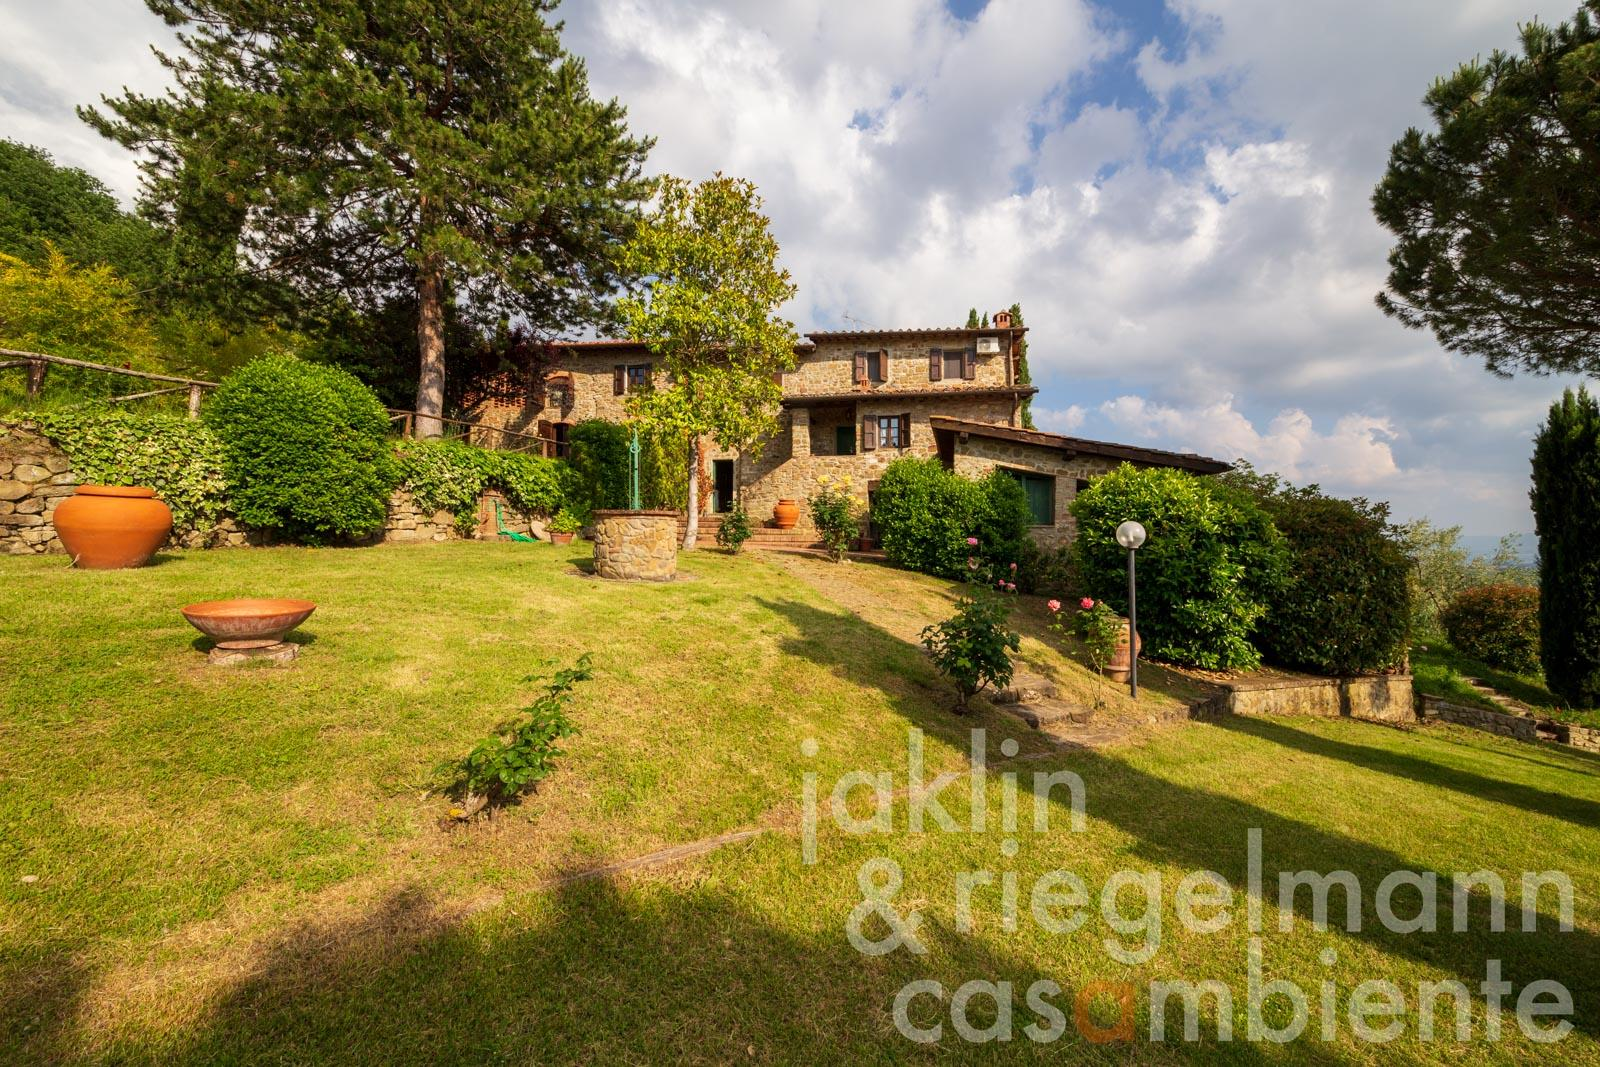 Rustico with pool in panoramic position near a village south of Florence